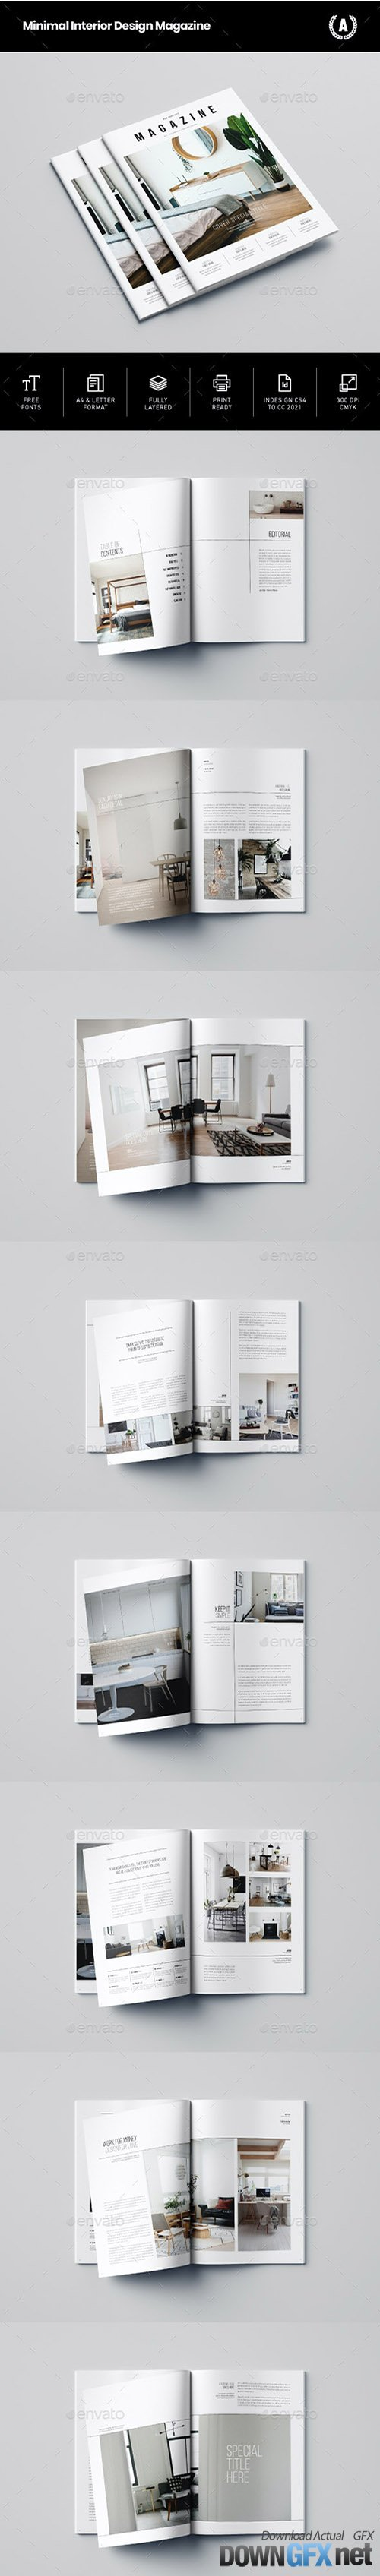 Minimal Interior Design Magazine